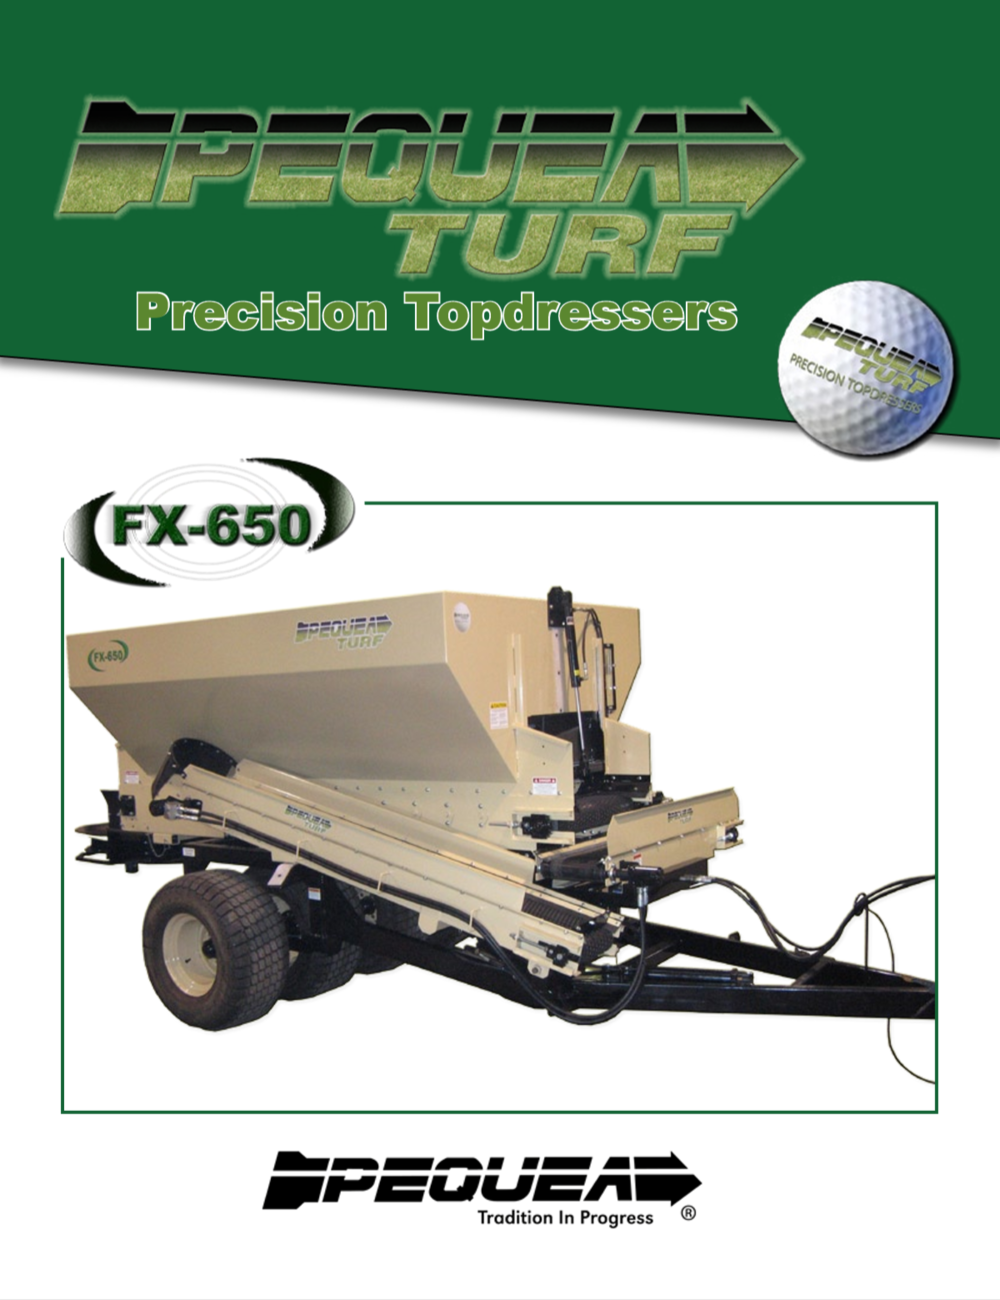 FX-650 Top Spreader Brochure